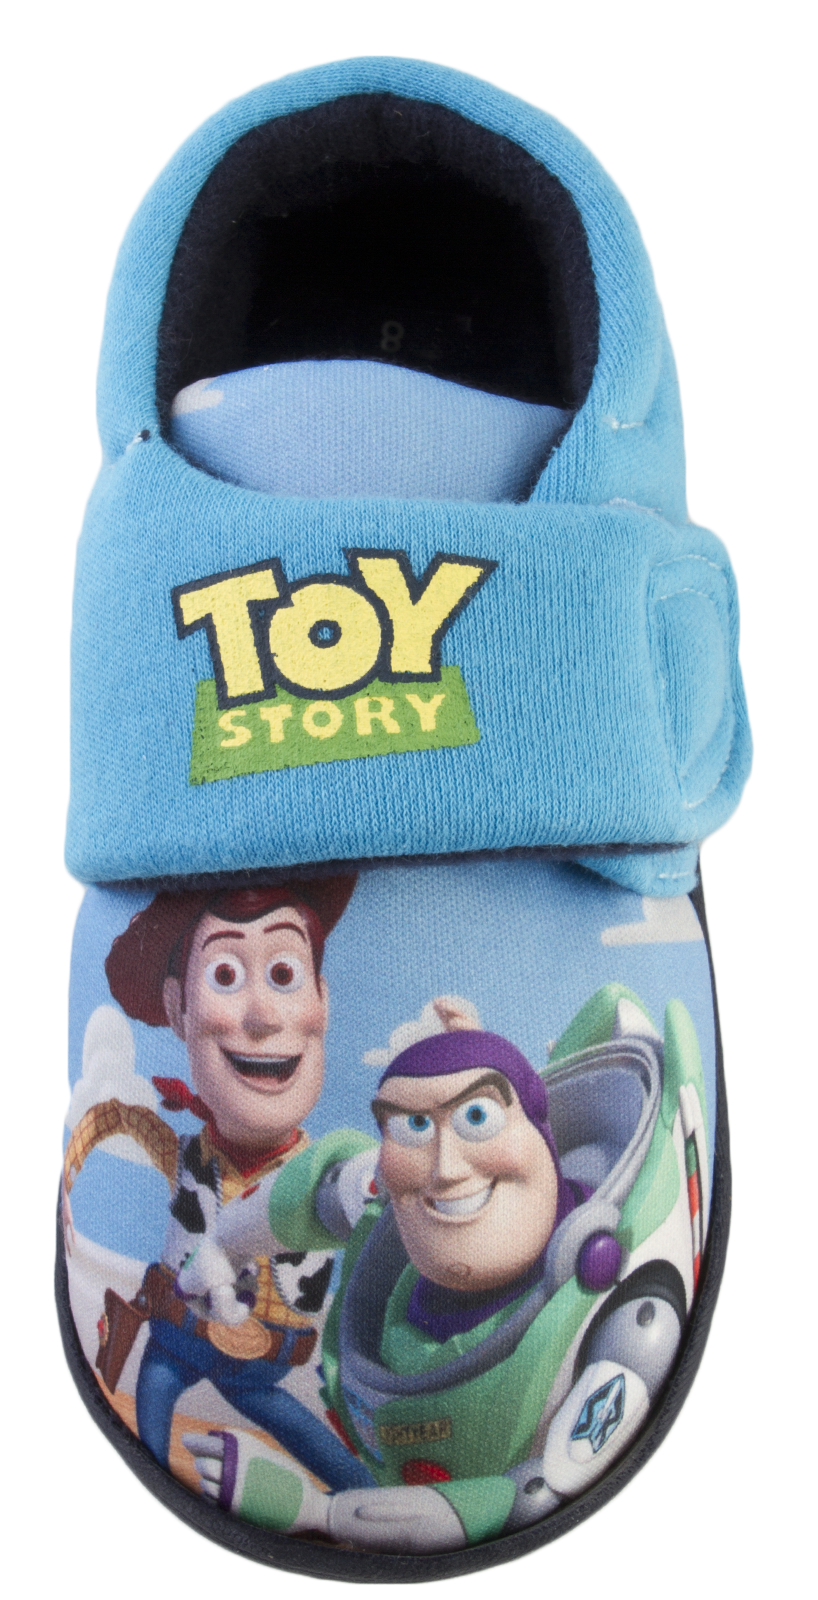 Disney Toys For Boys : Disney toy story slippers comfort booties buzz lightyear